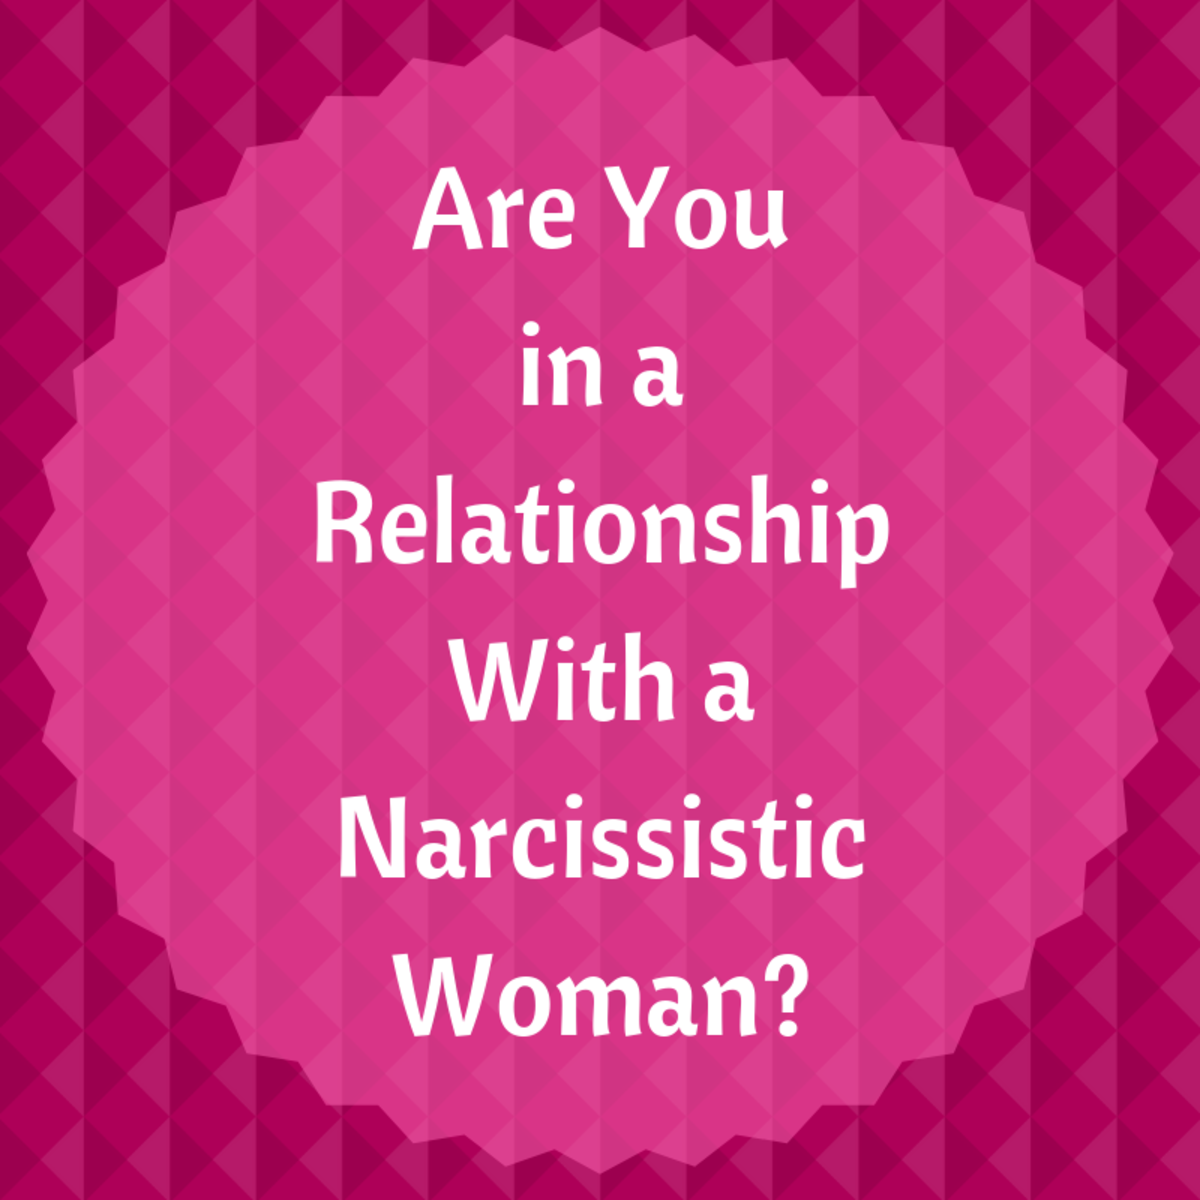 Are You in an Abusive Relationship With a Narcissistic Woman?